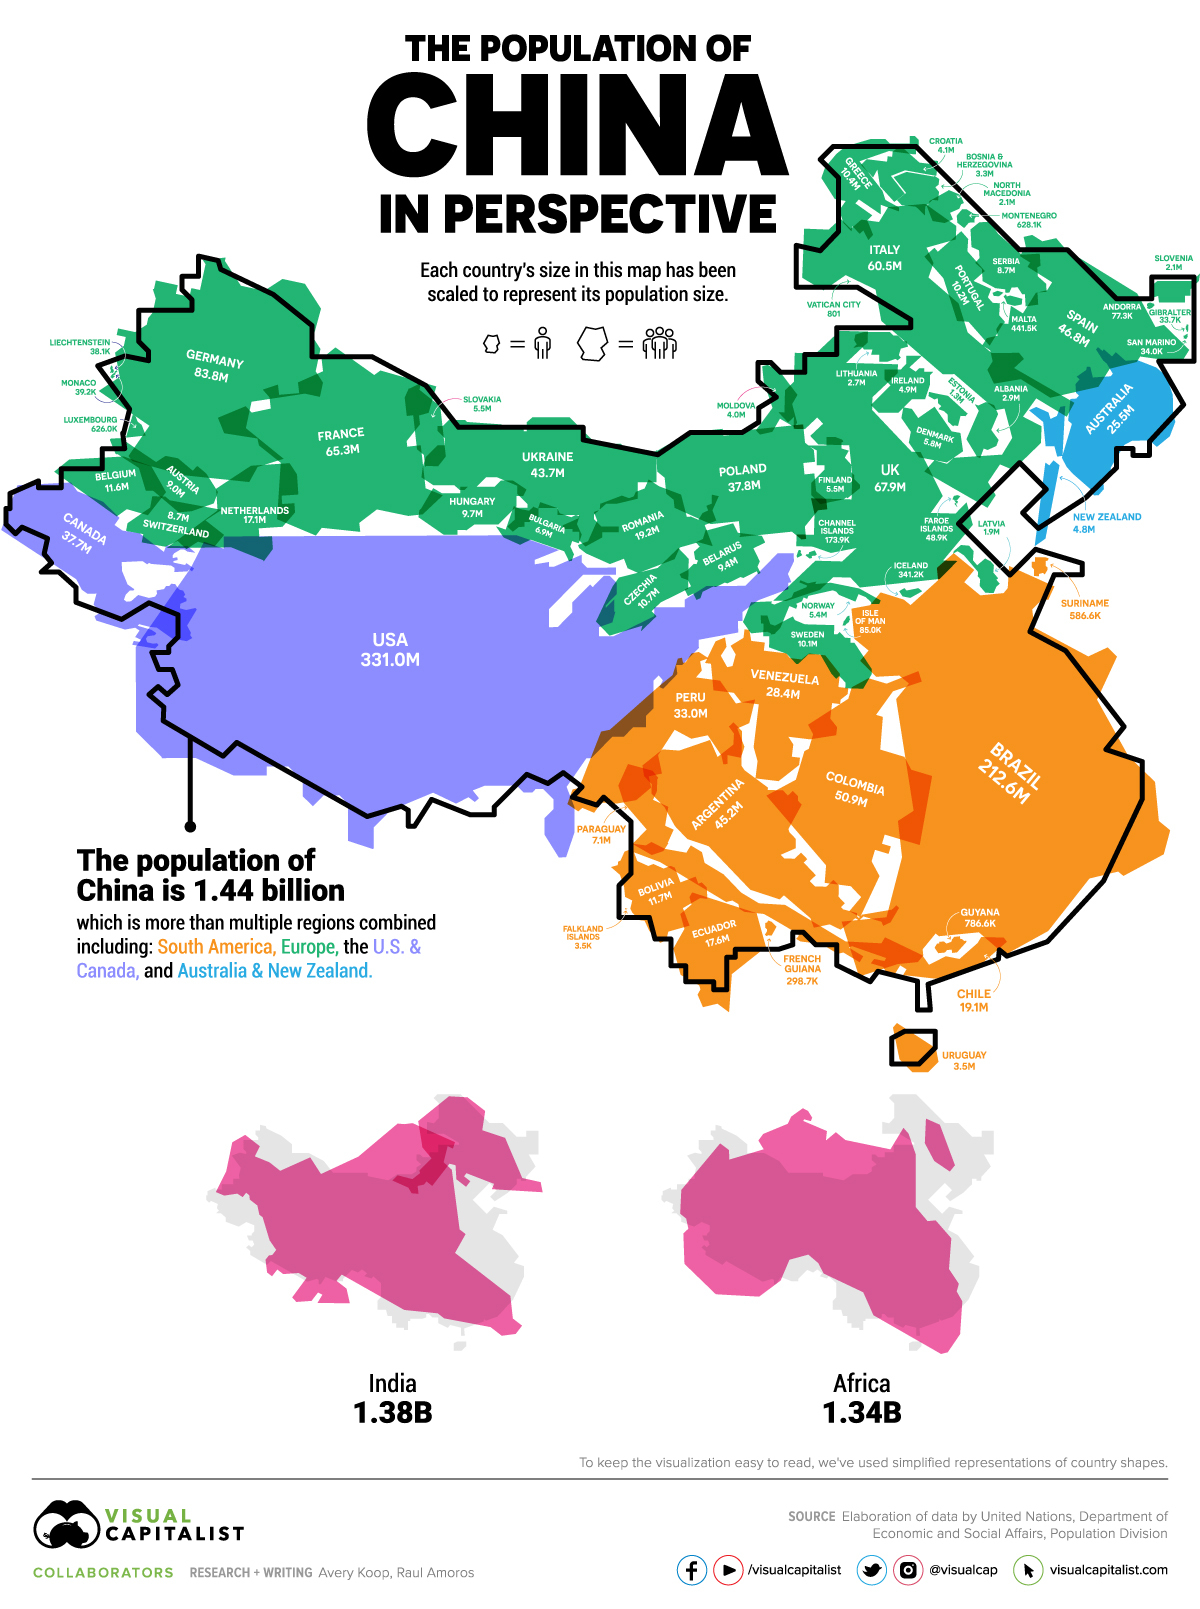 The Population of China in Perspective